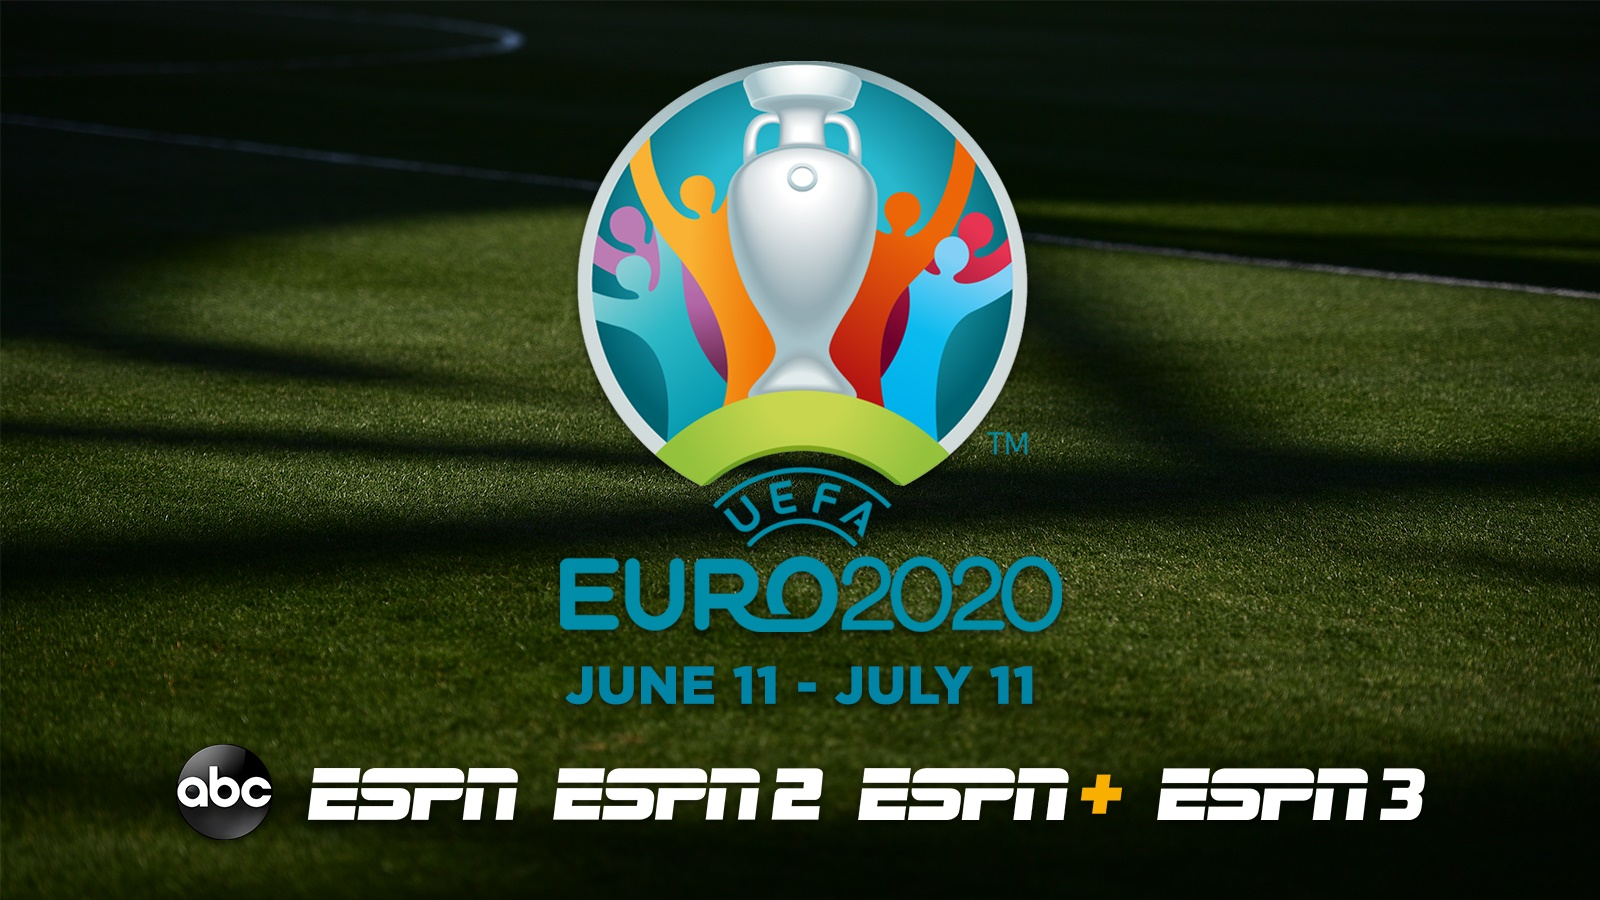 ESPN Networks and ABC to Present All 51 Matches of UEFA European Football Championship 2020, June 11 – July 11 - ESPN Press Room U.S.